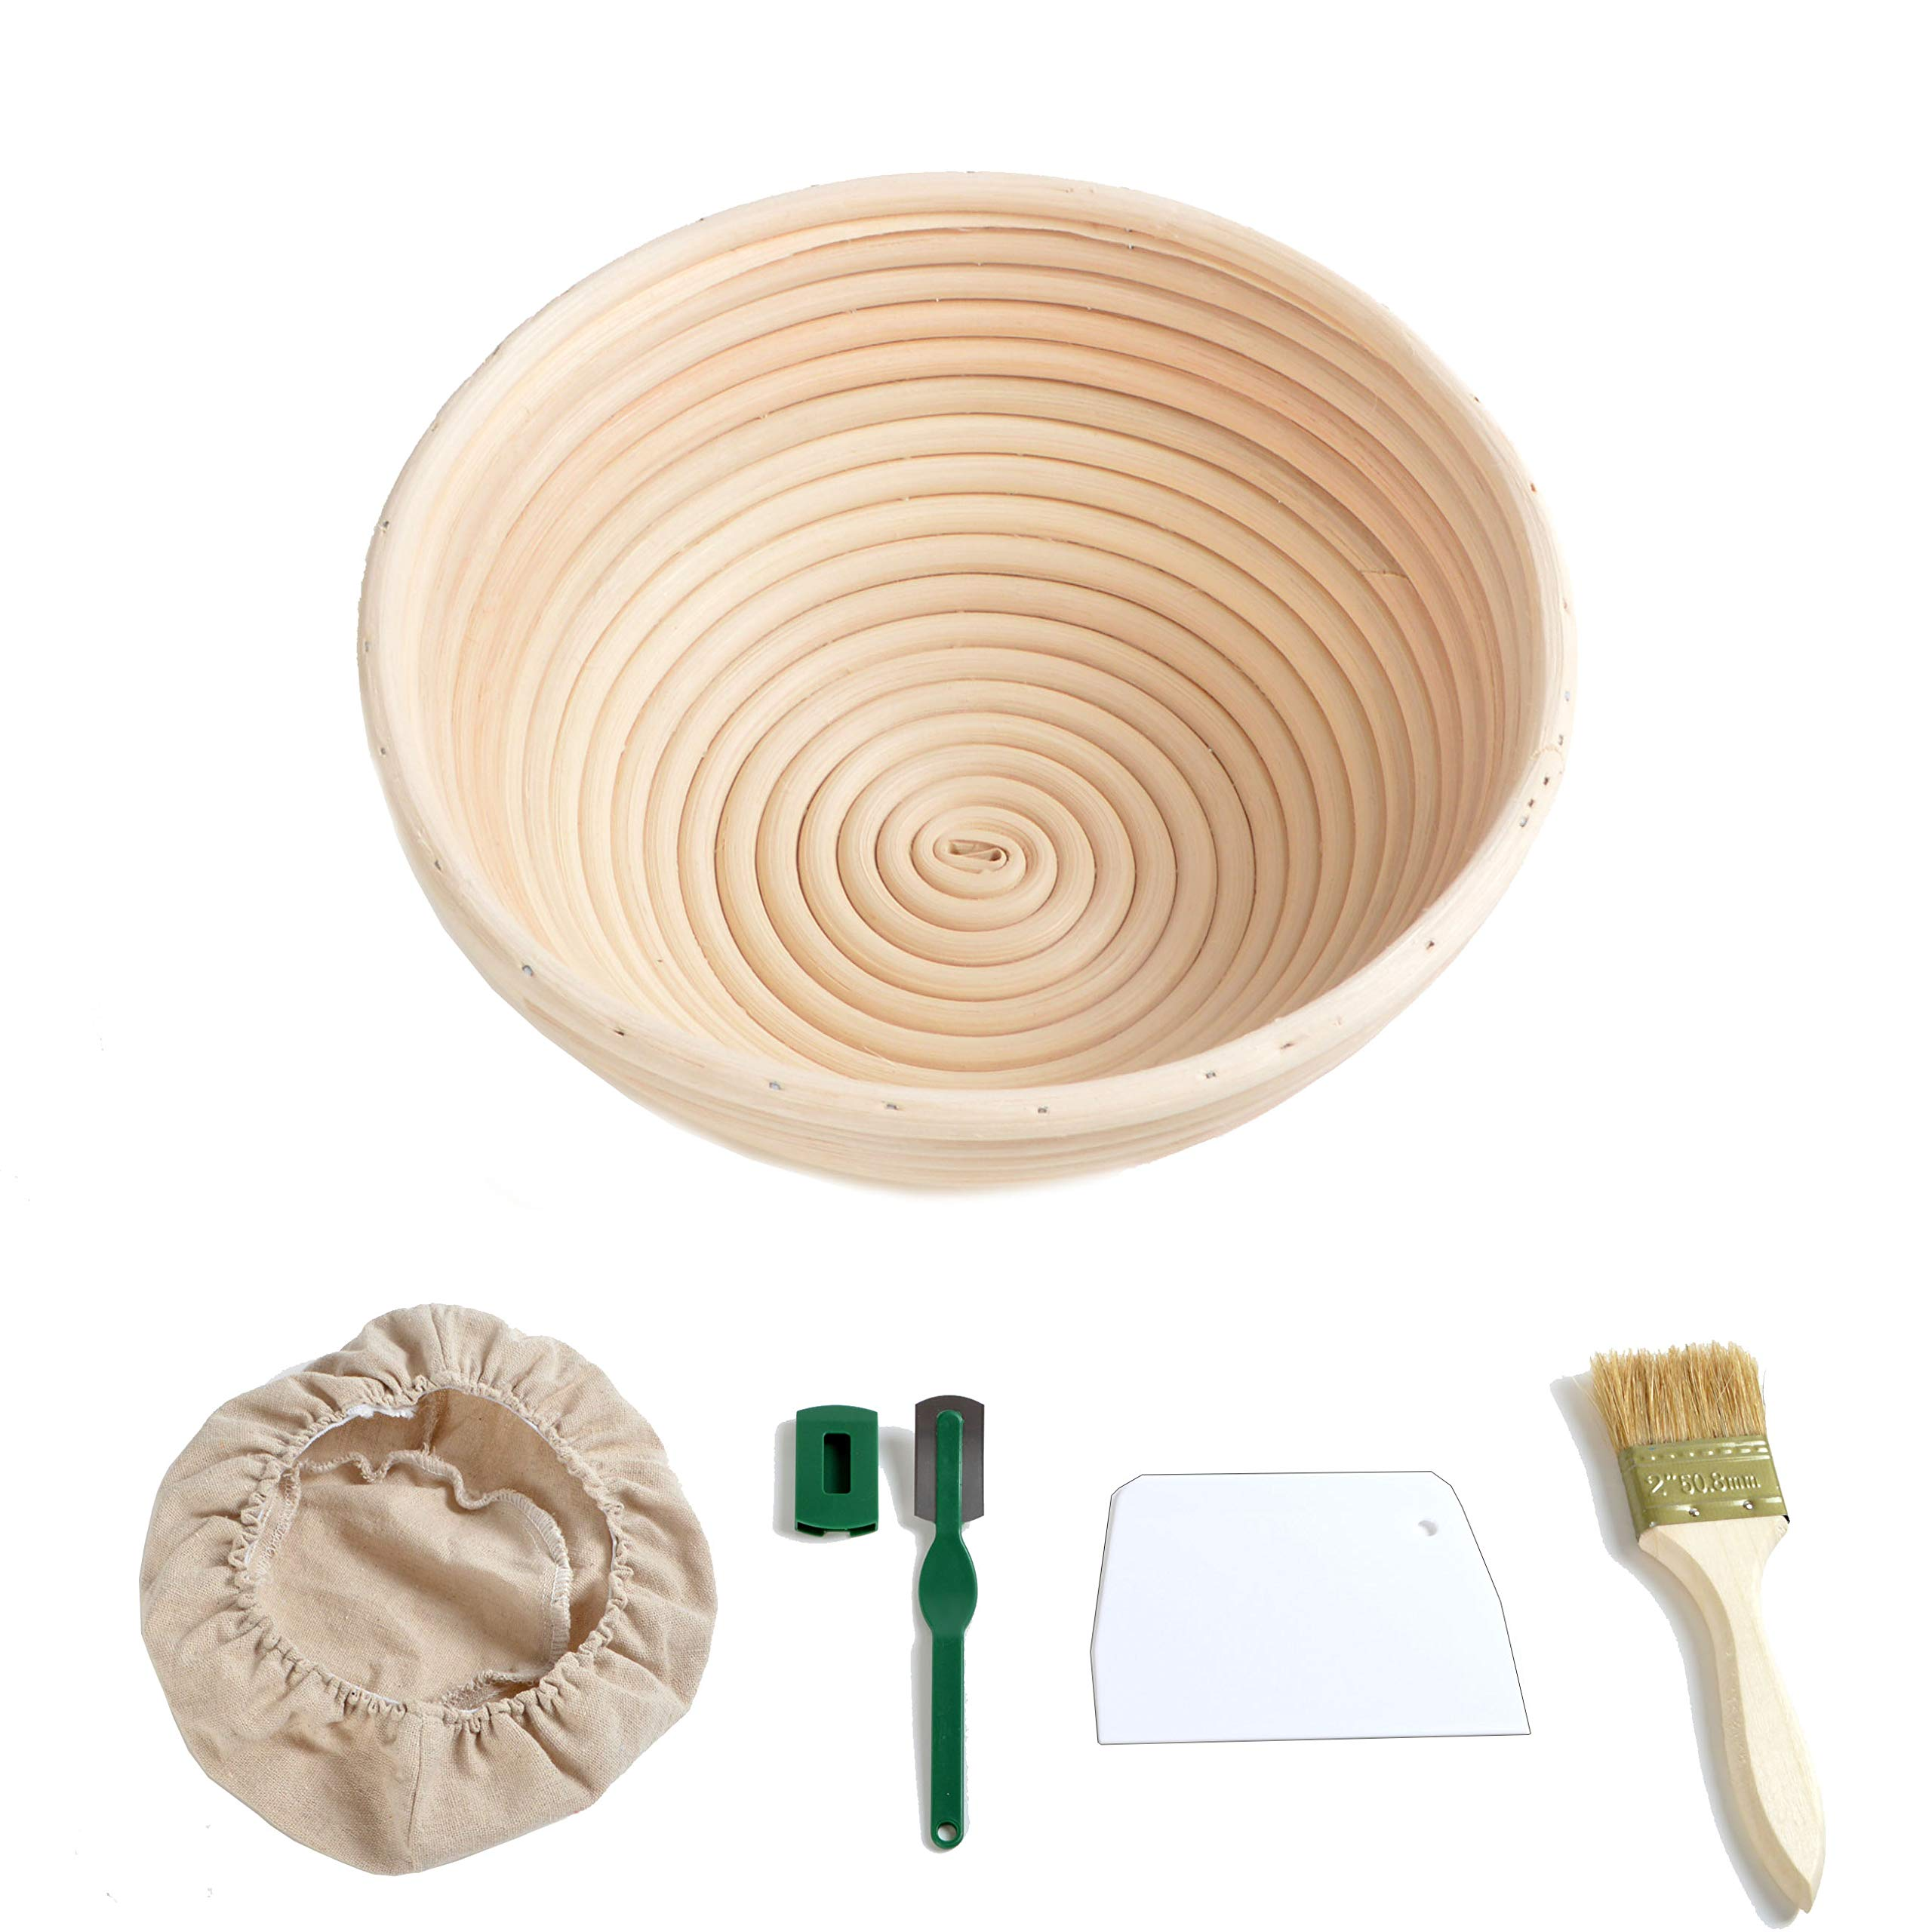 8.6''/22cm Round Bread Proofing Basket Sourdough Proving Bannetons w/Liner Cloth Bread Cutter Lame Brush fit 700g Dough by grandtobuy